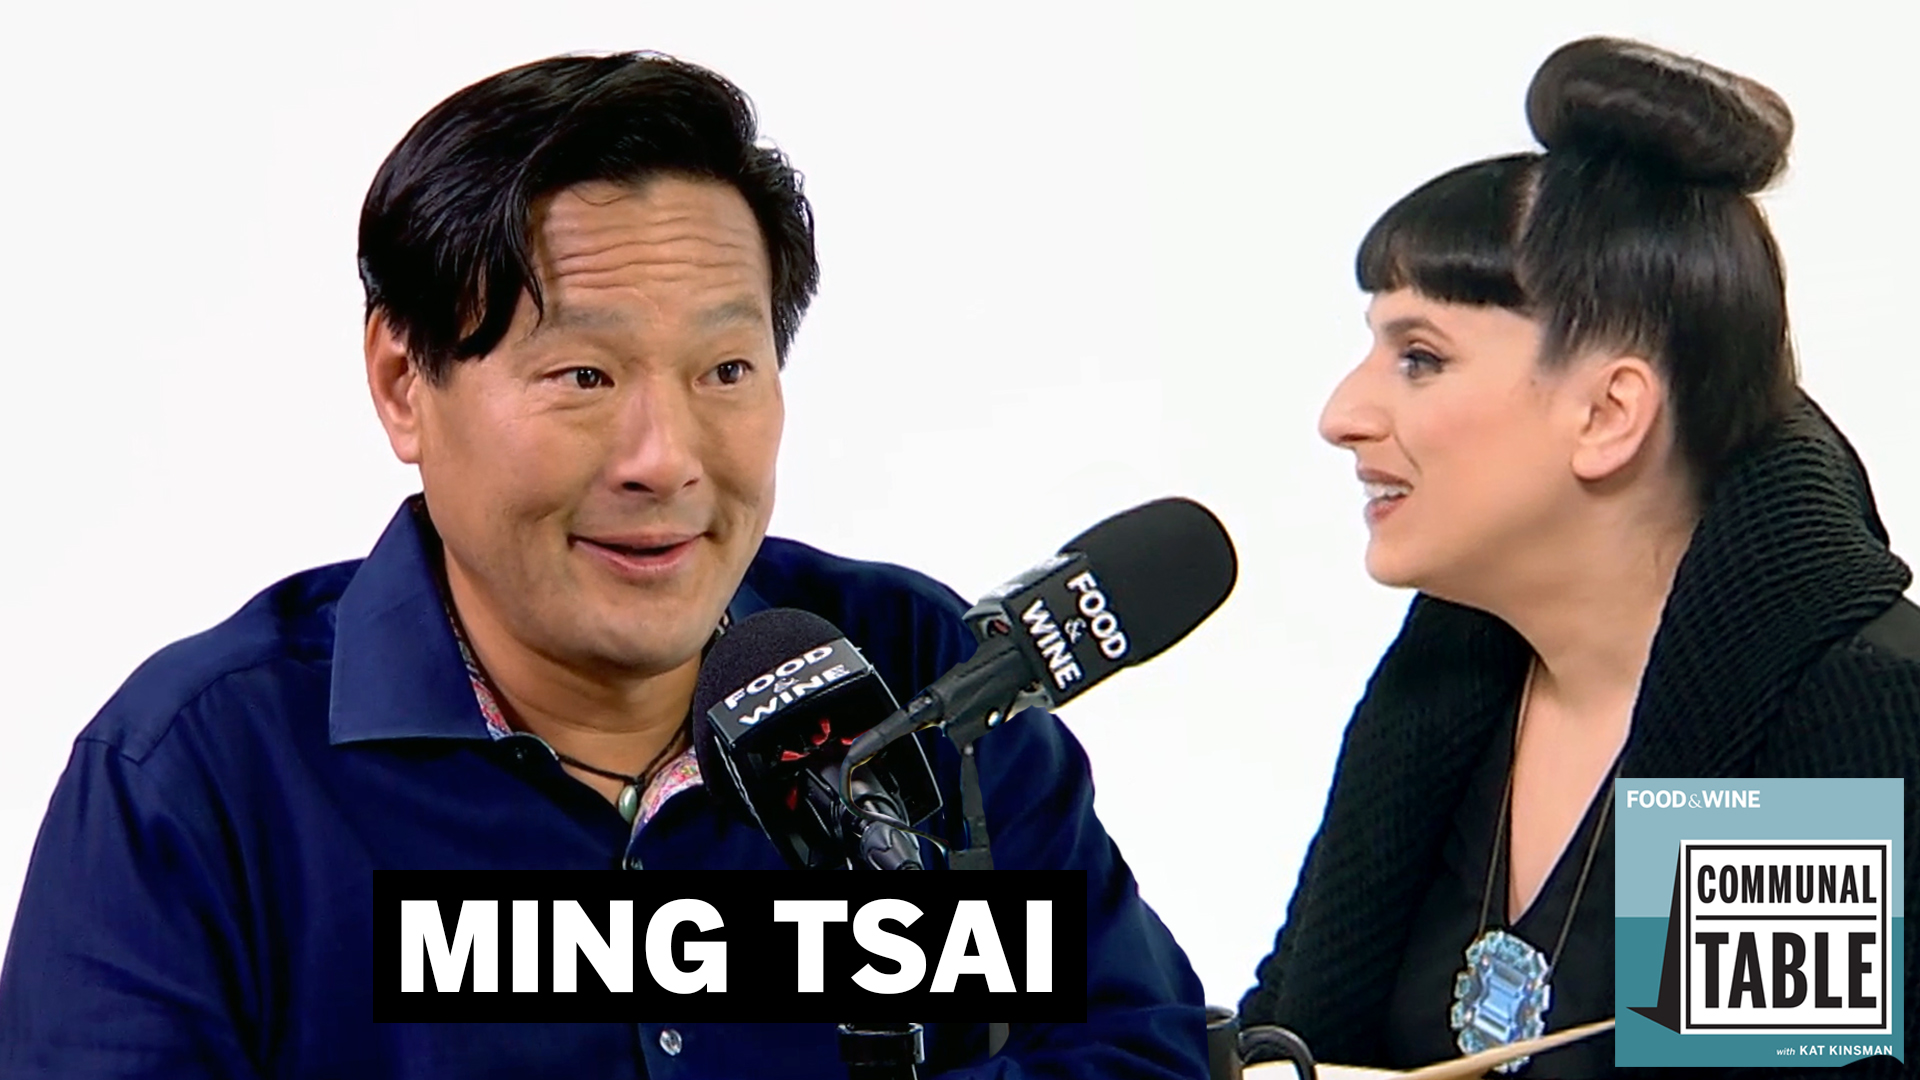 Communal Table Podcast: Ming Tsai